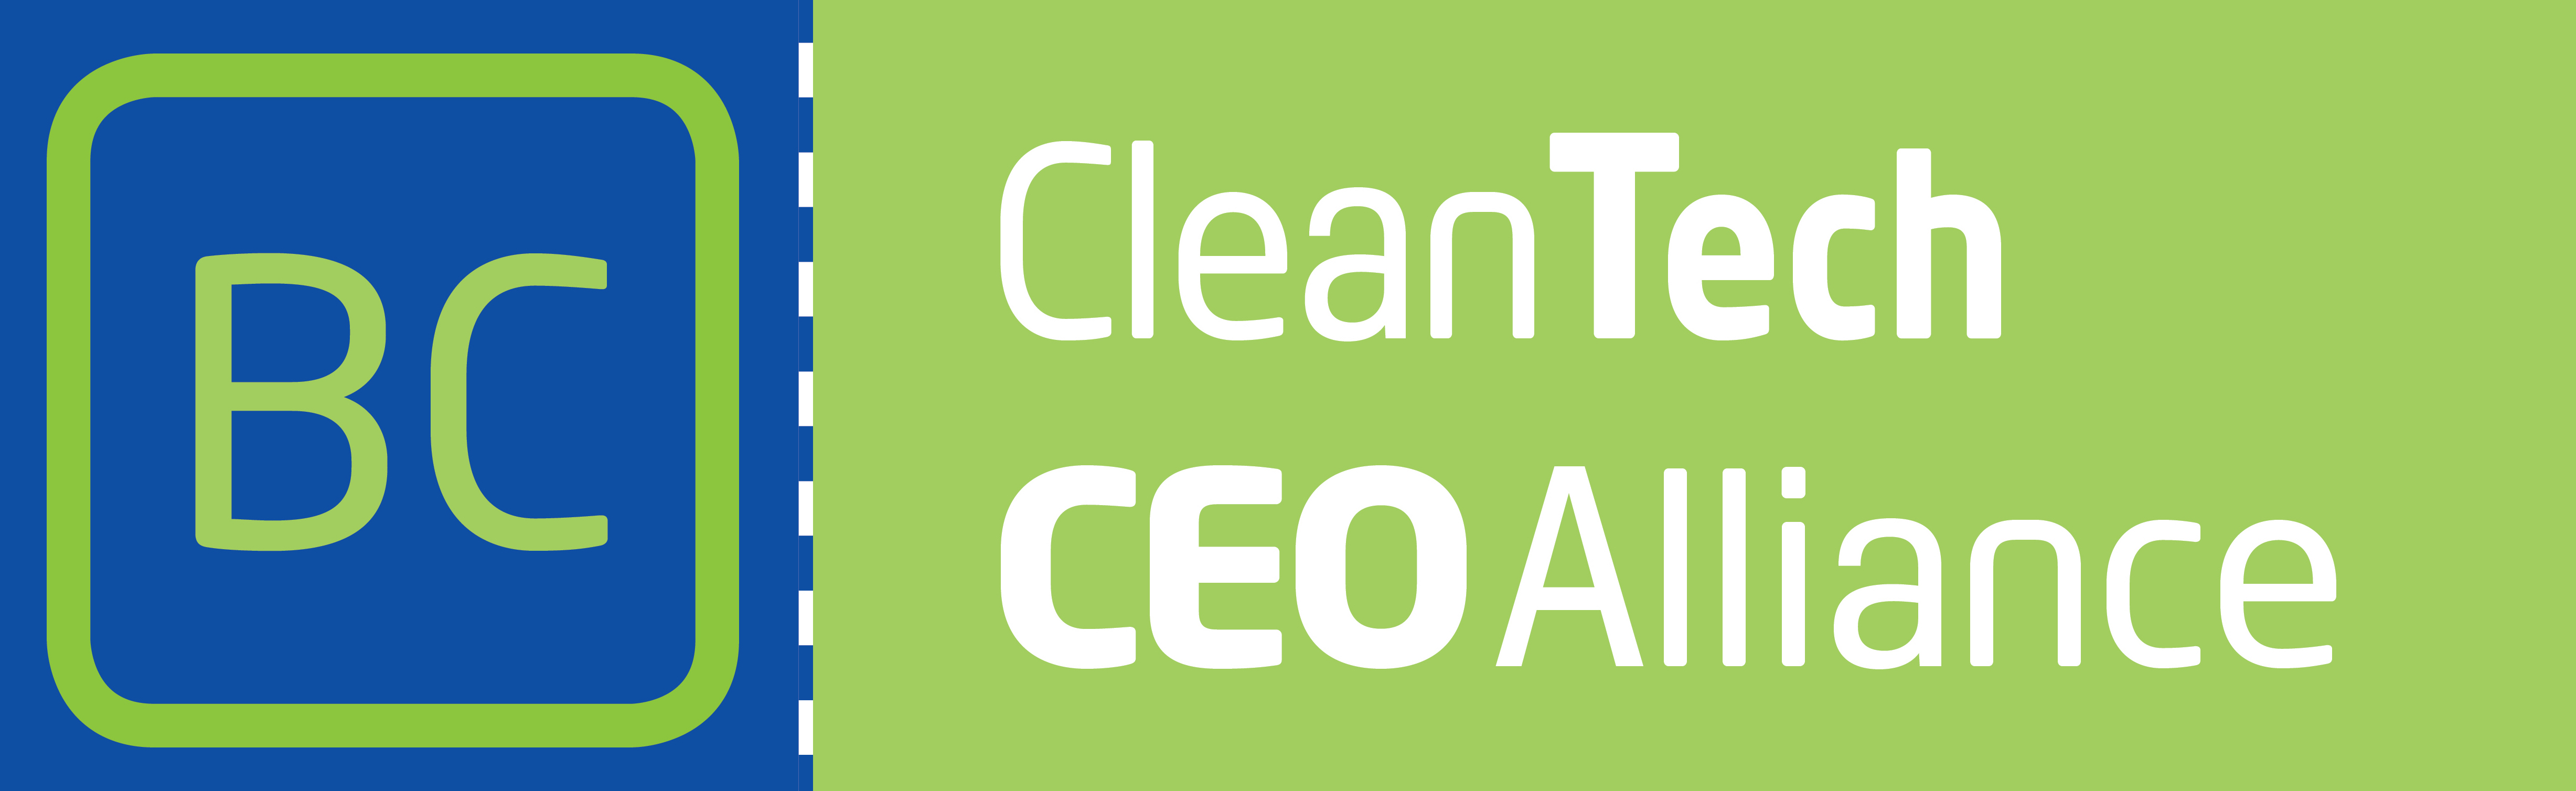 BC Cleantech CEO Alliance